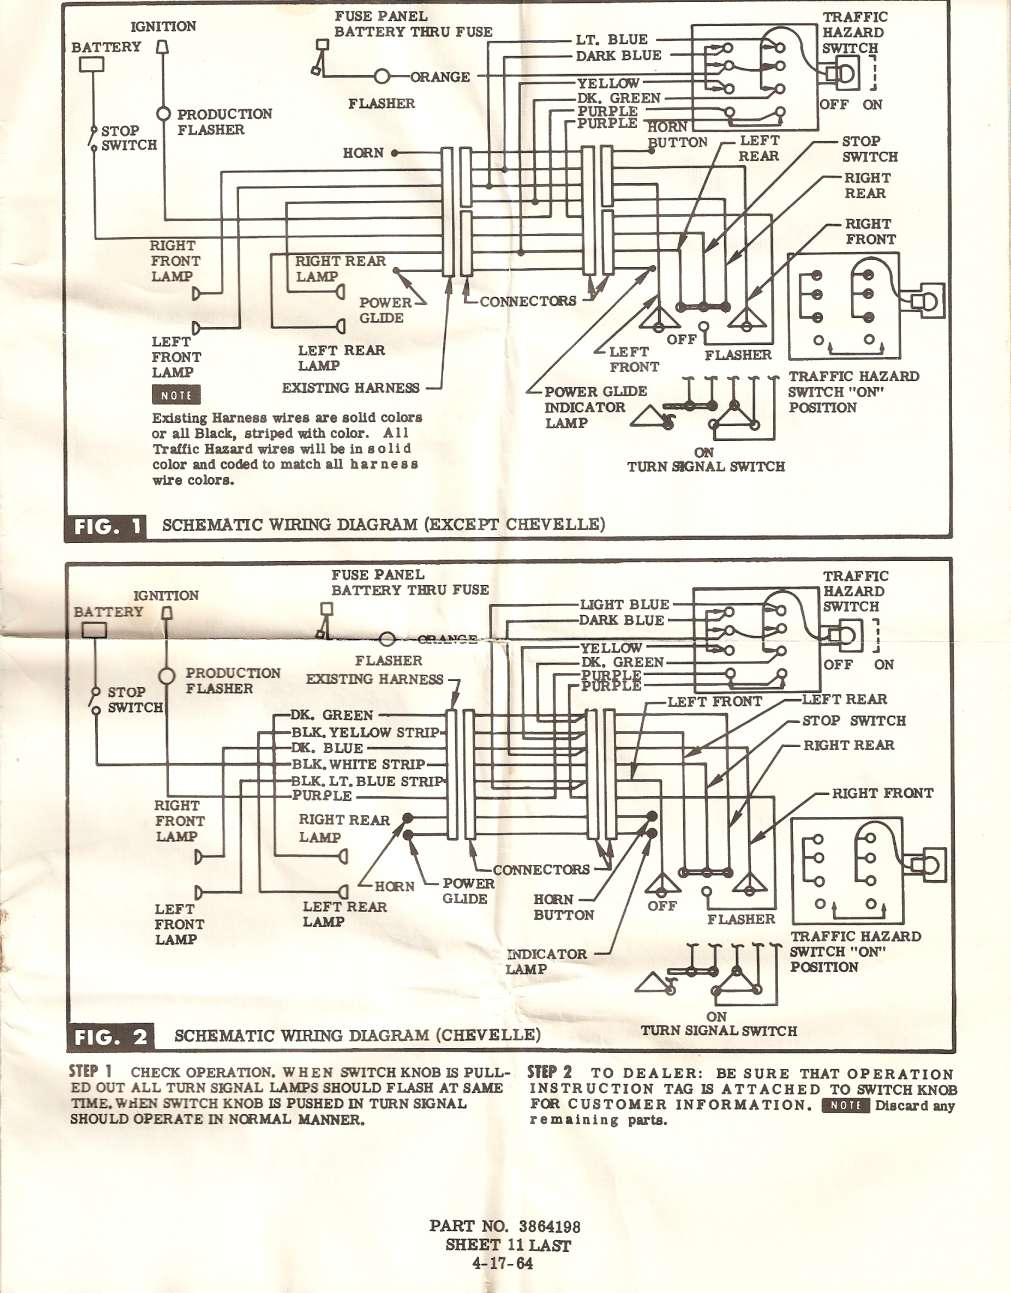 Hayabusa Wiring Diagram 2007 Fuse Box Image Sand Rail On